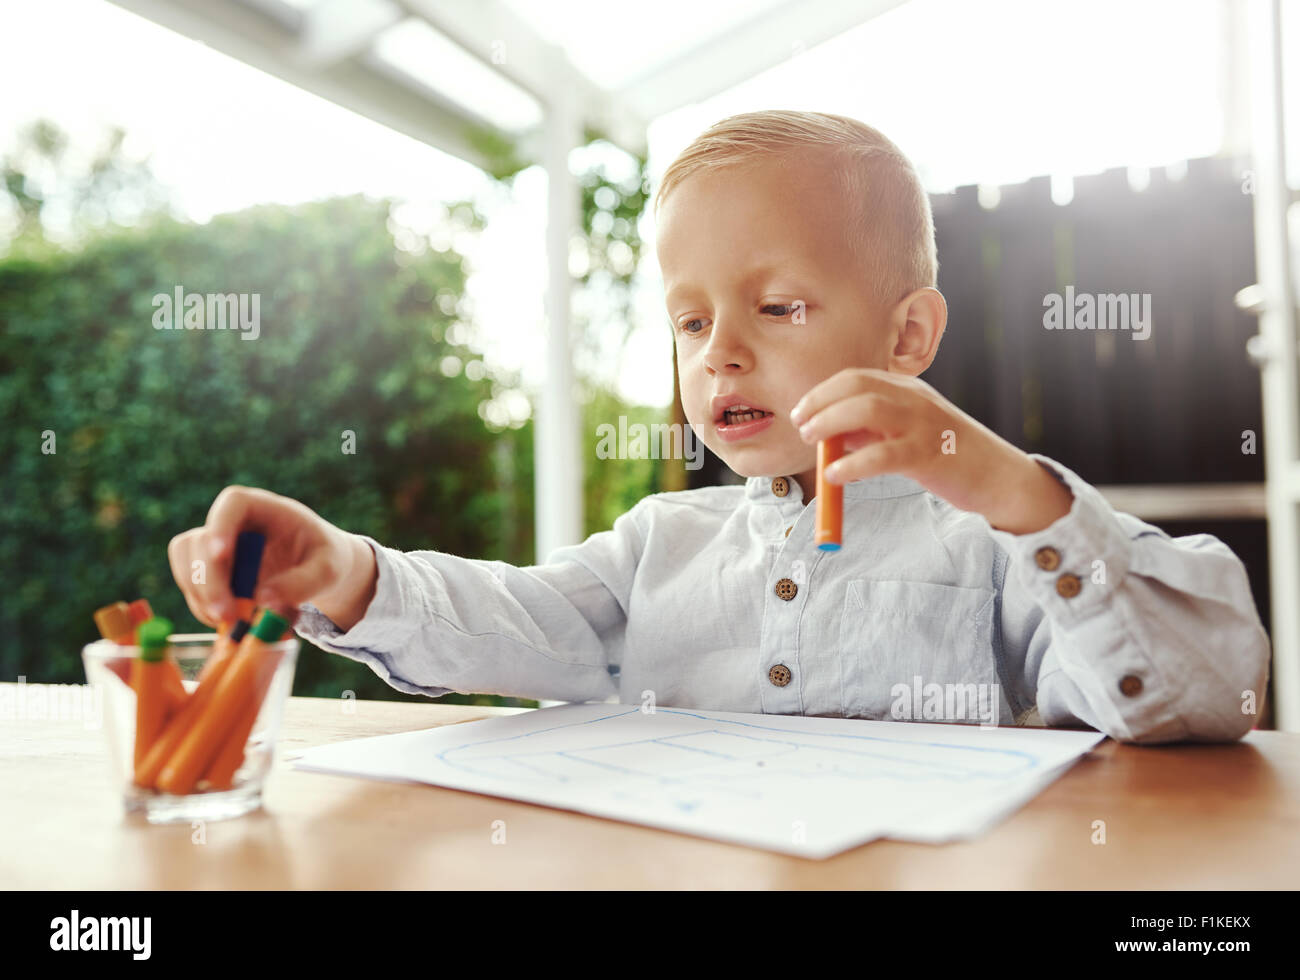 Cute little blond boy selecting a colored wax crayon from a collection in a glass container as he prepares to commence - Stock Image